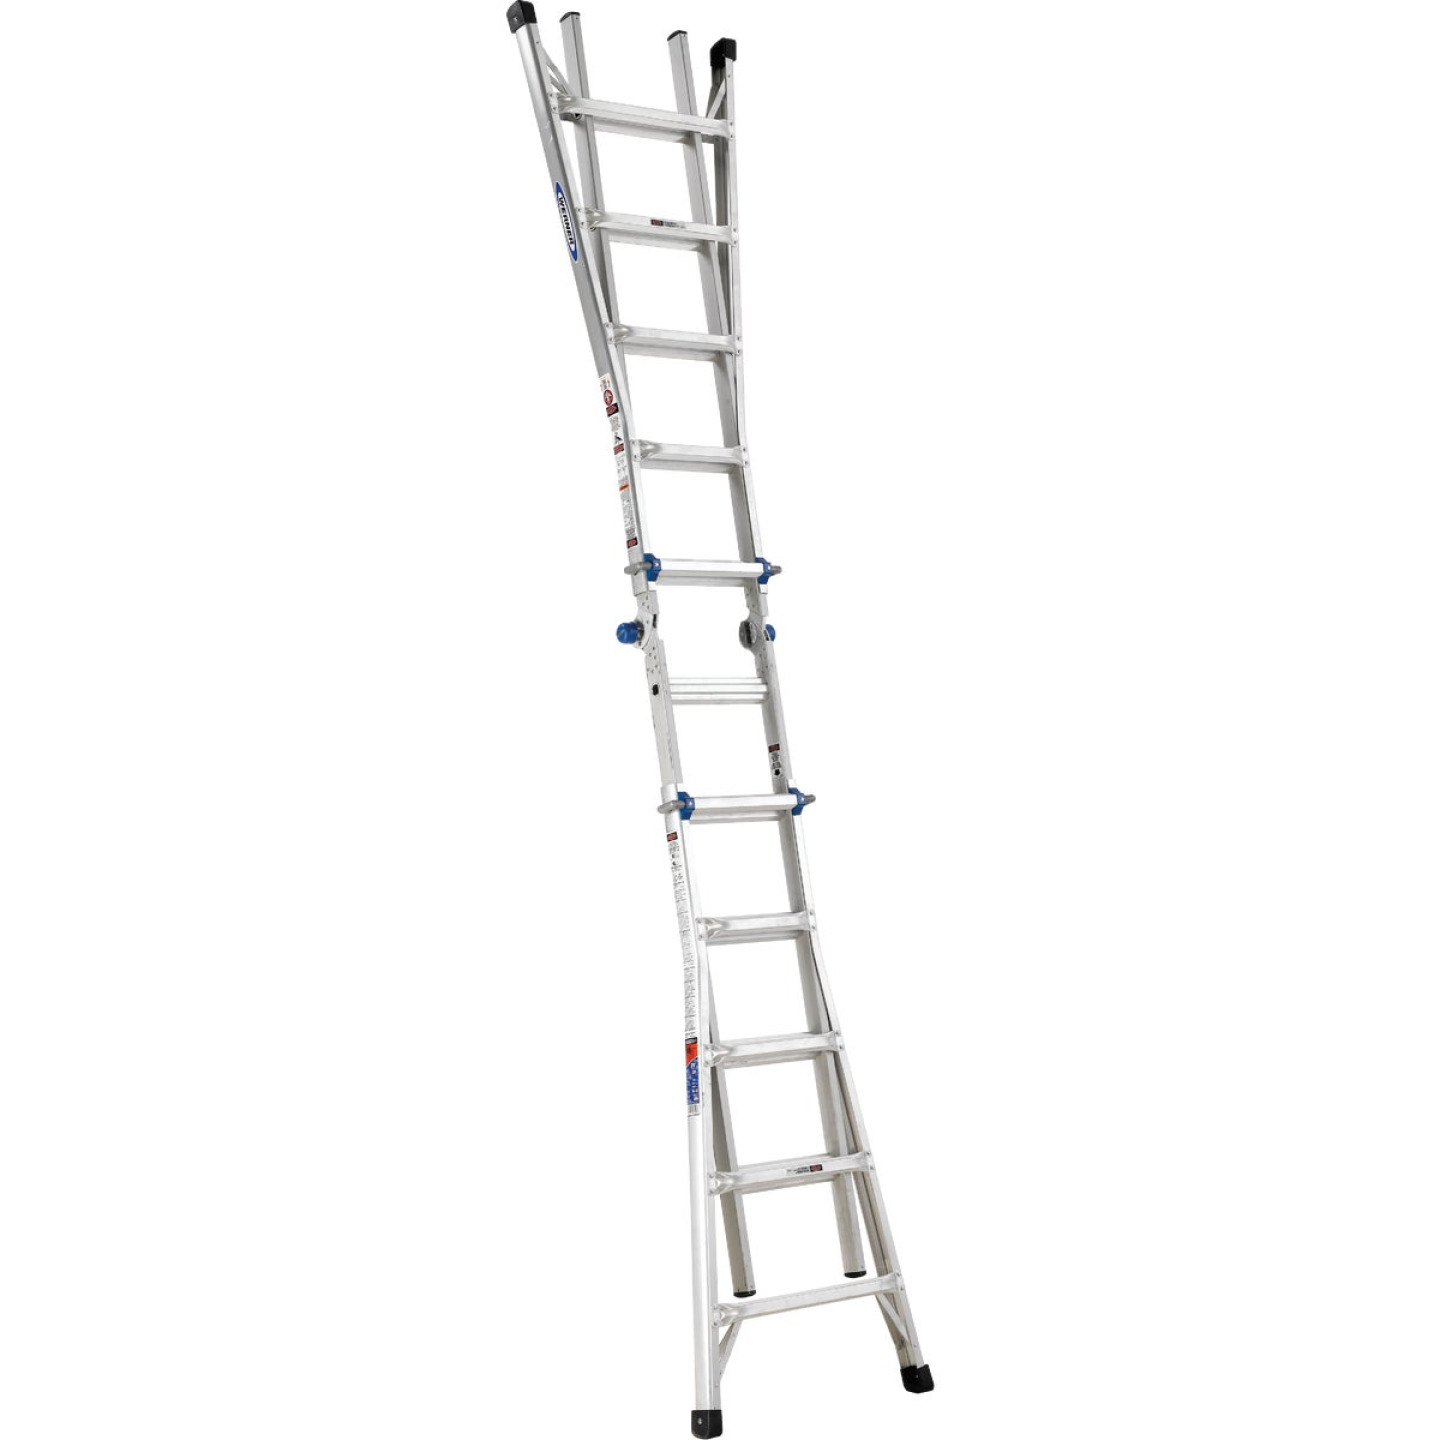 Werner 22 Ft. Aluminum Multi-Position Telescoping Ladder with 300 Lb. Load Capacity Type IA Ladder Rating Image 9